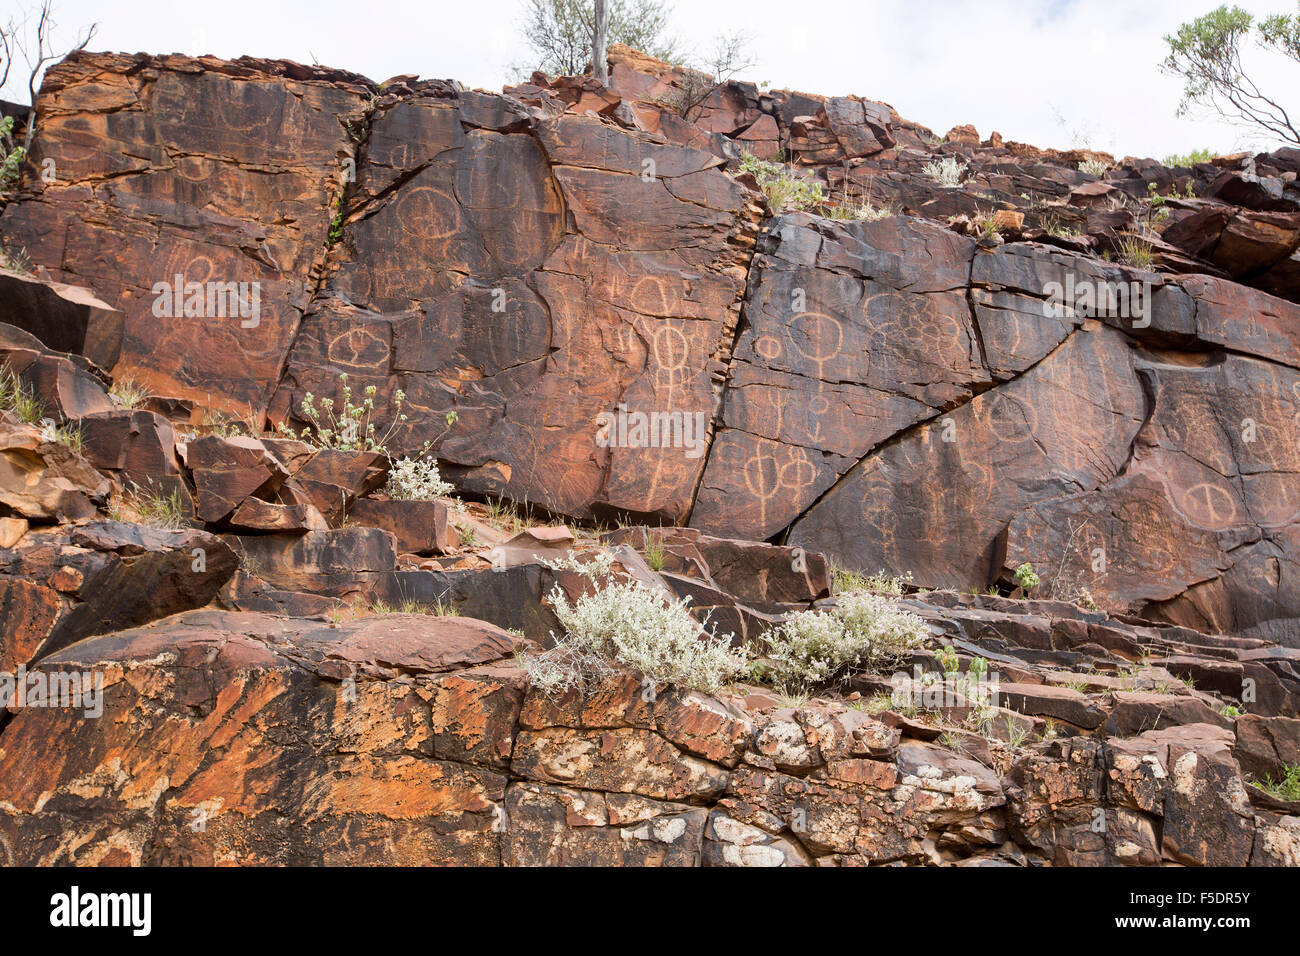 Ancient aboriginal rock art engravngs symbols of initiation rites ancient aboriginal rock art engravngs symbols of initiation rites on red stone walls in flinders ranges in outback australia biocorpaavc Image collections